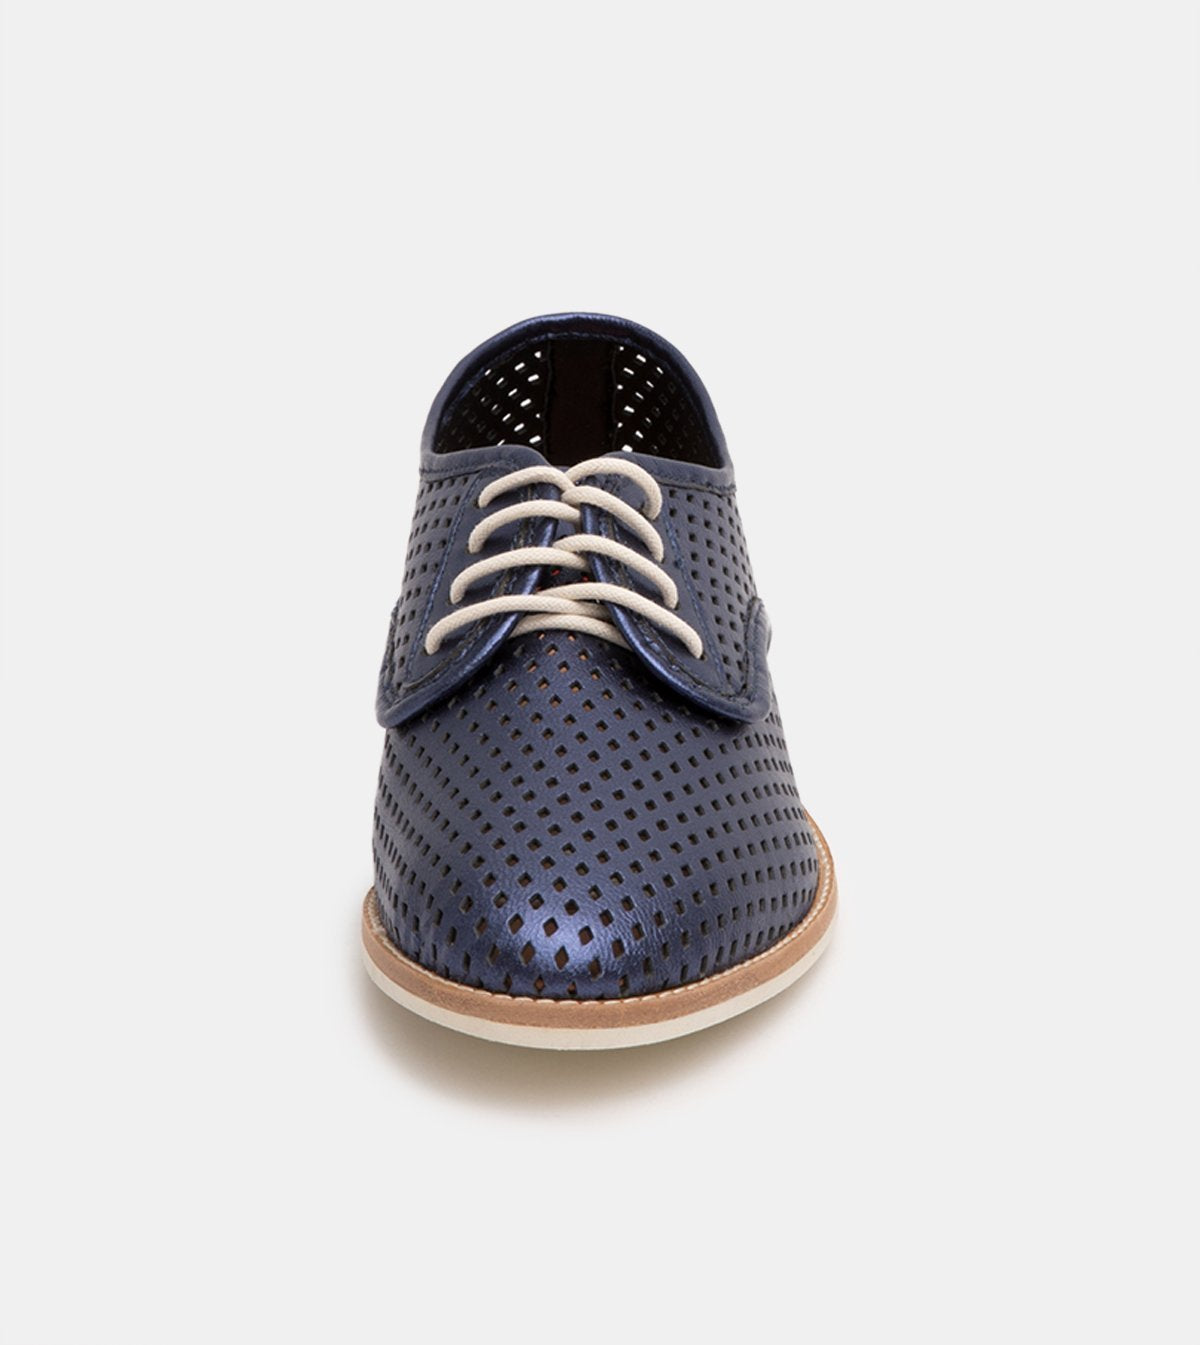 Rollie Derby Punch Navy Metallic Shoes